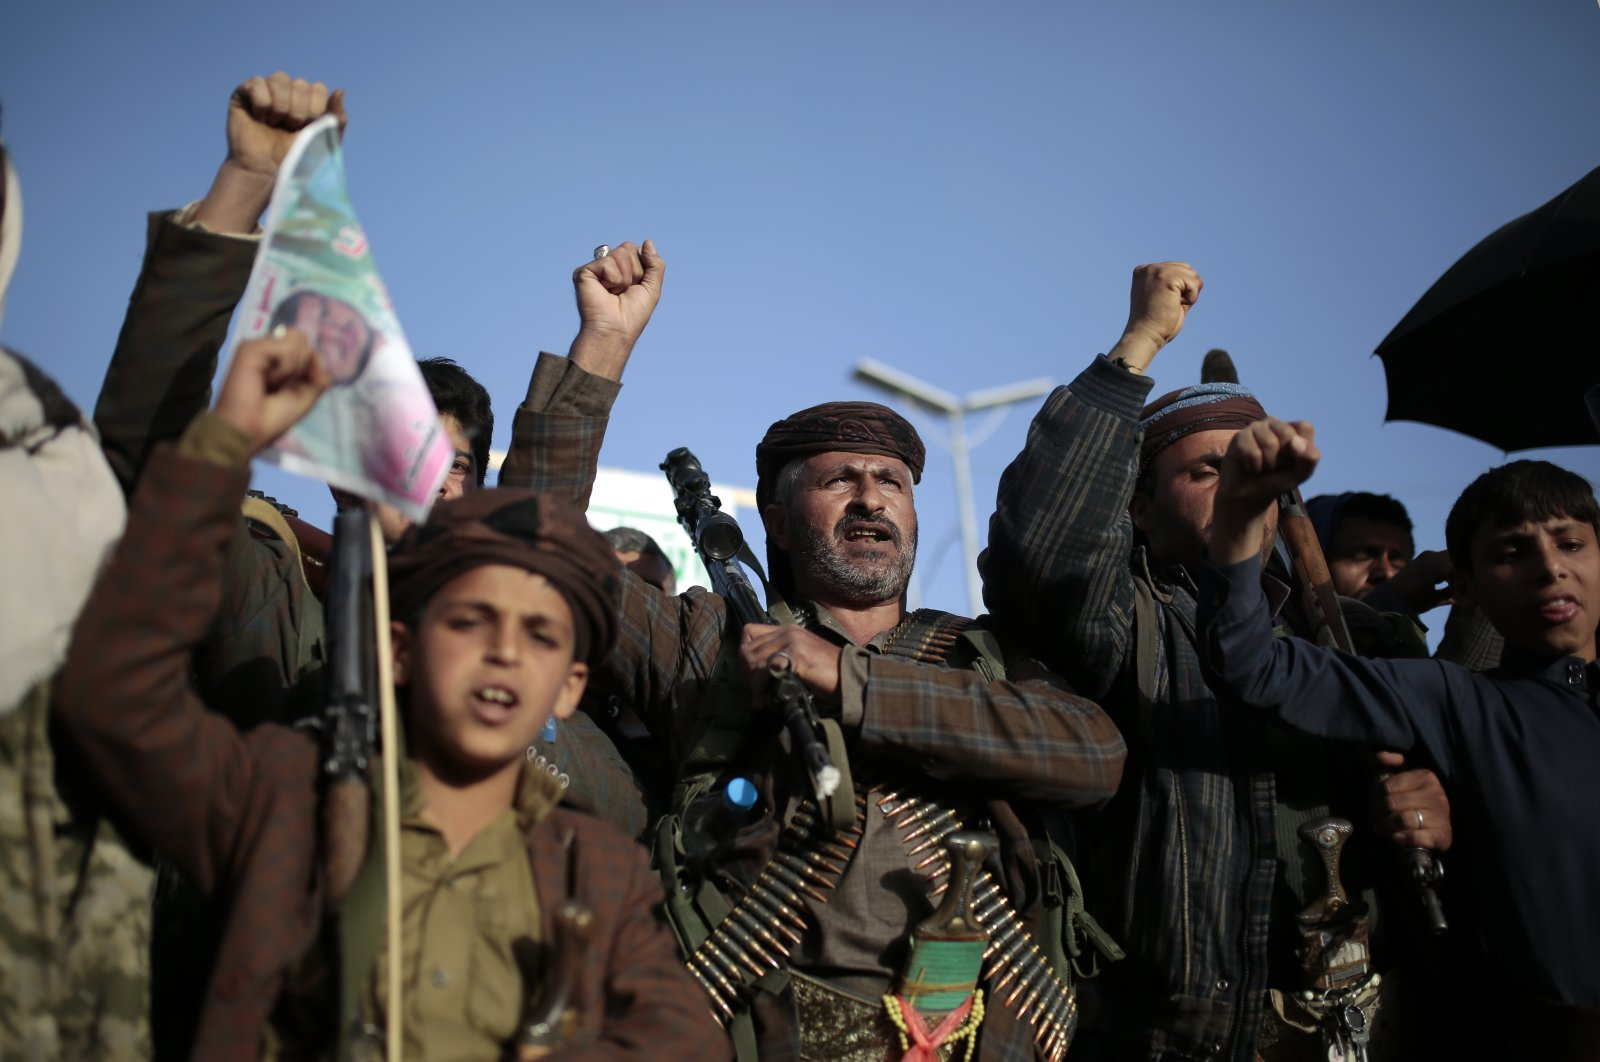 Houthi supporters chant slogans as they attend a demonstration against the United States over its decision to designate the Houthis a foreign terrorist organization in Sanaa, Yemen, Jan. 25, 2021. (AP Photo)